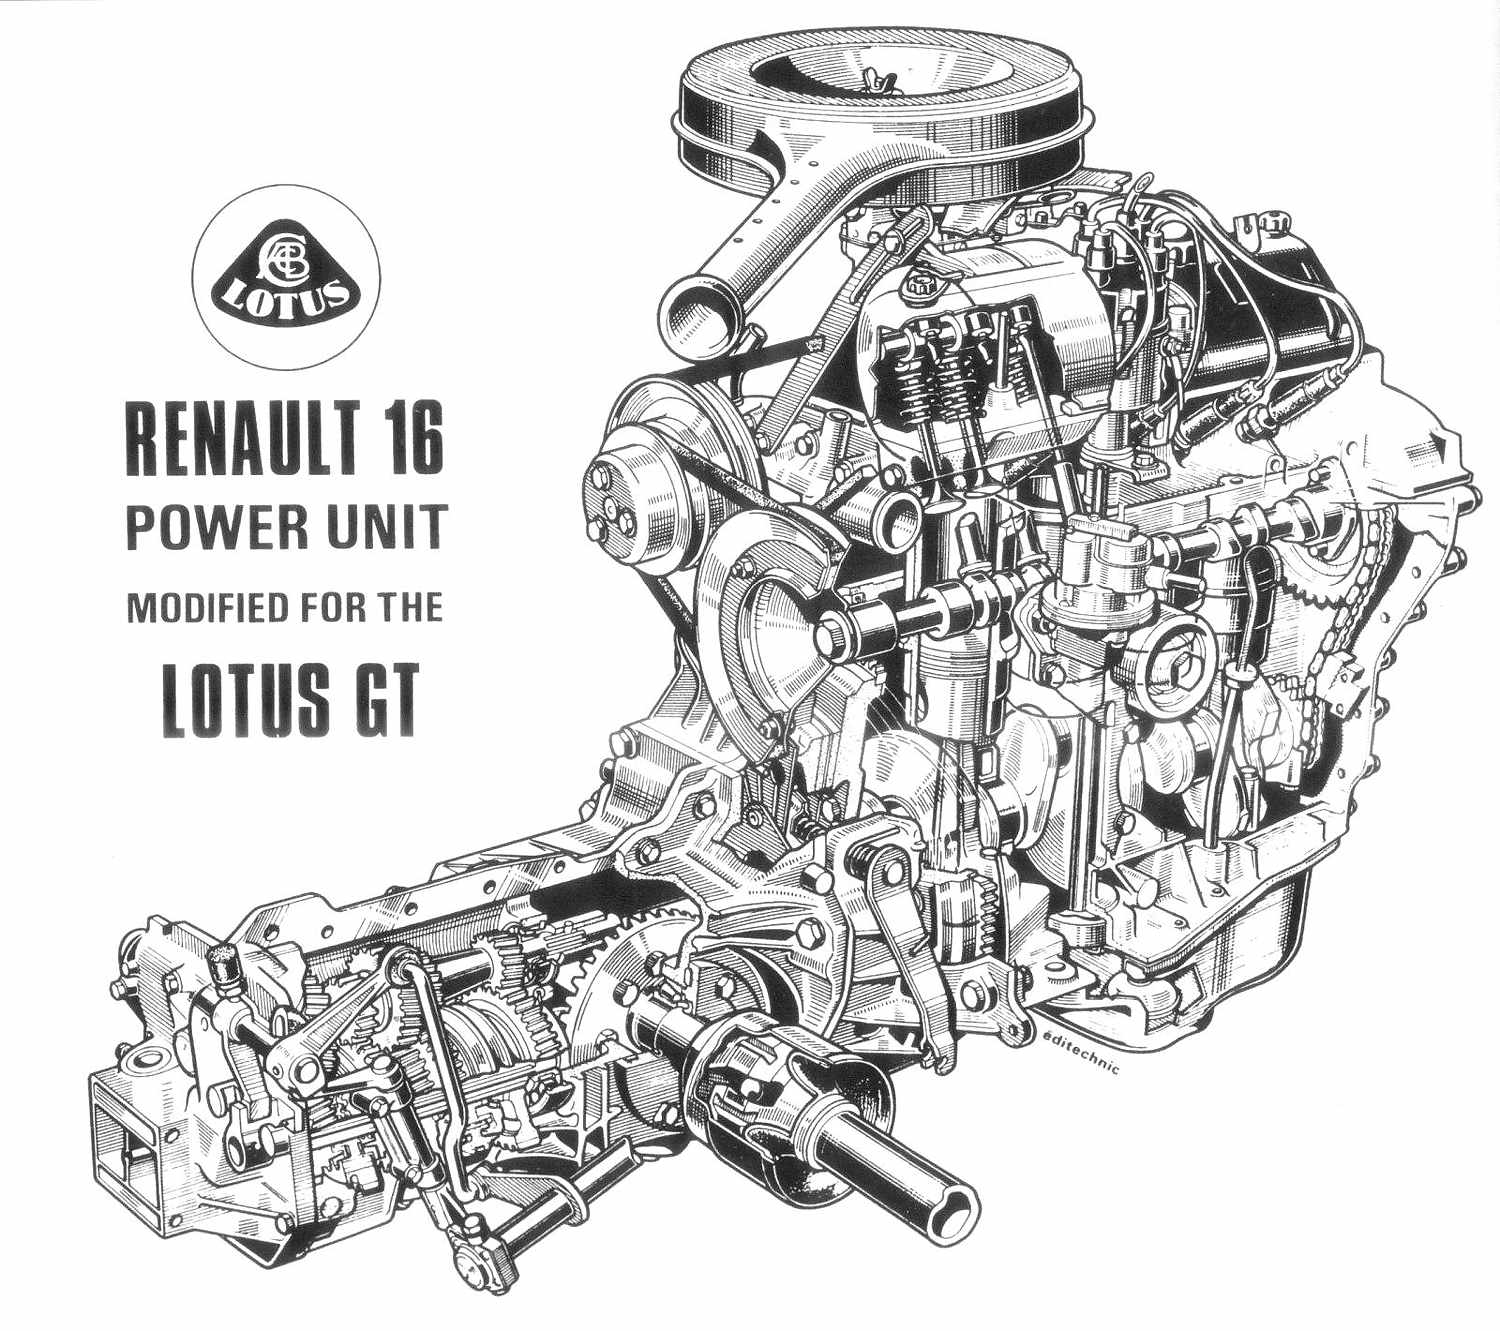 Lotus Renault engine